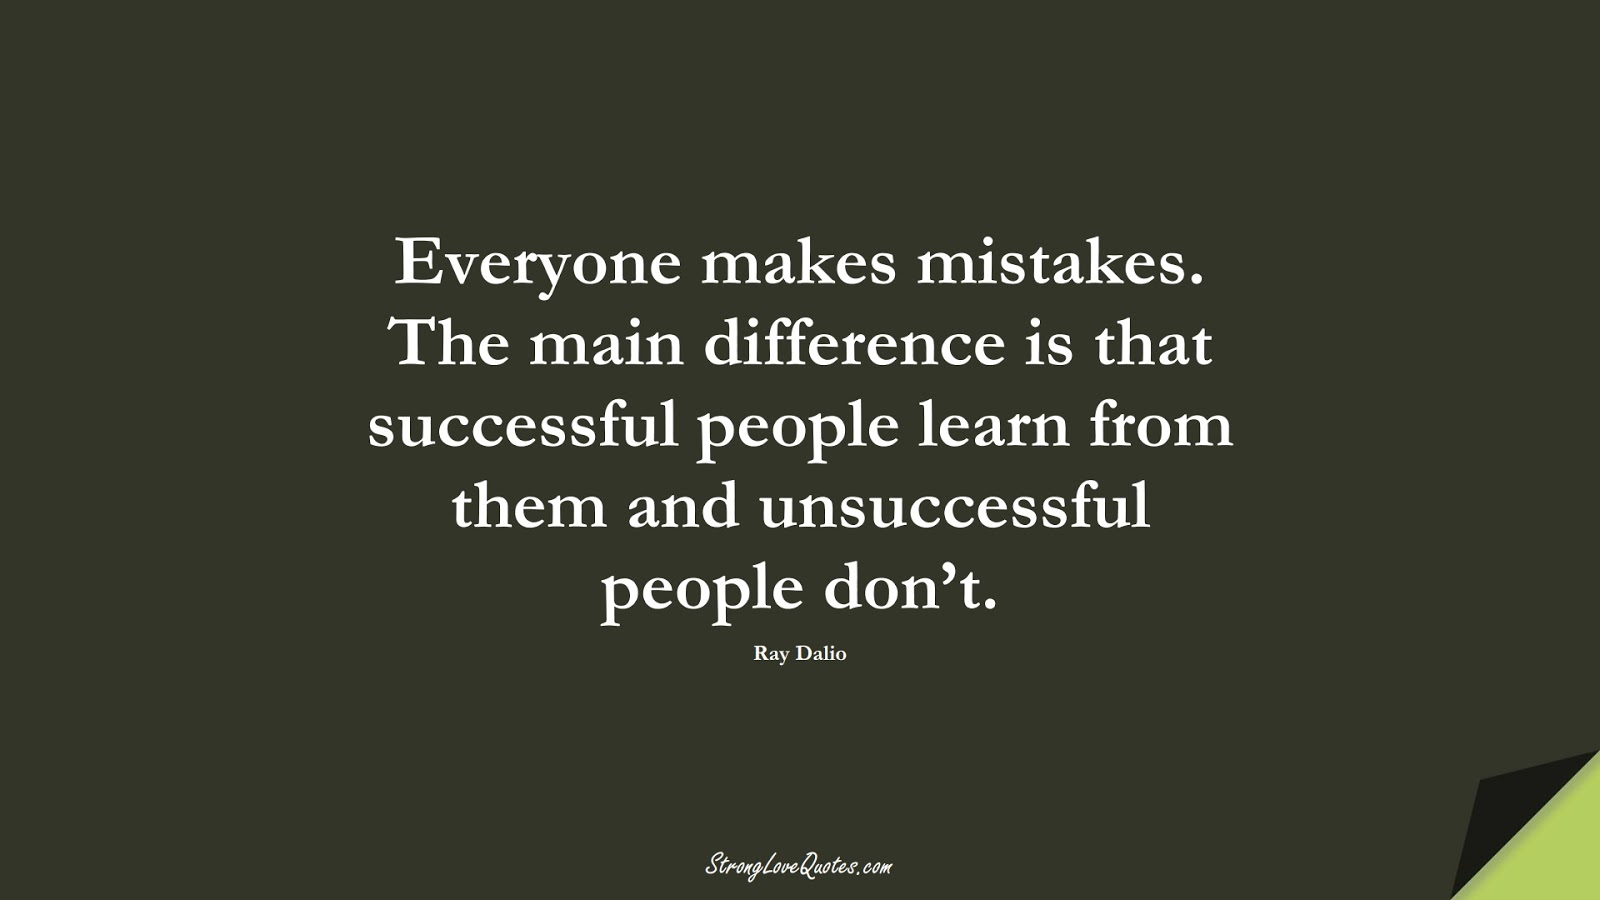 Everyone makes mistakes. The main difference is that successful people learn from them and unsuccessful people don't. (Ray Dalio);  #LearningQuotes